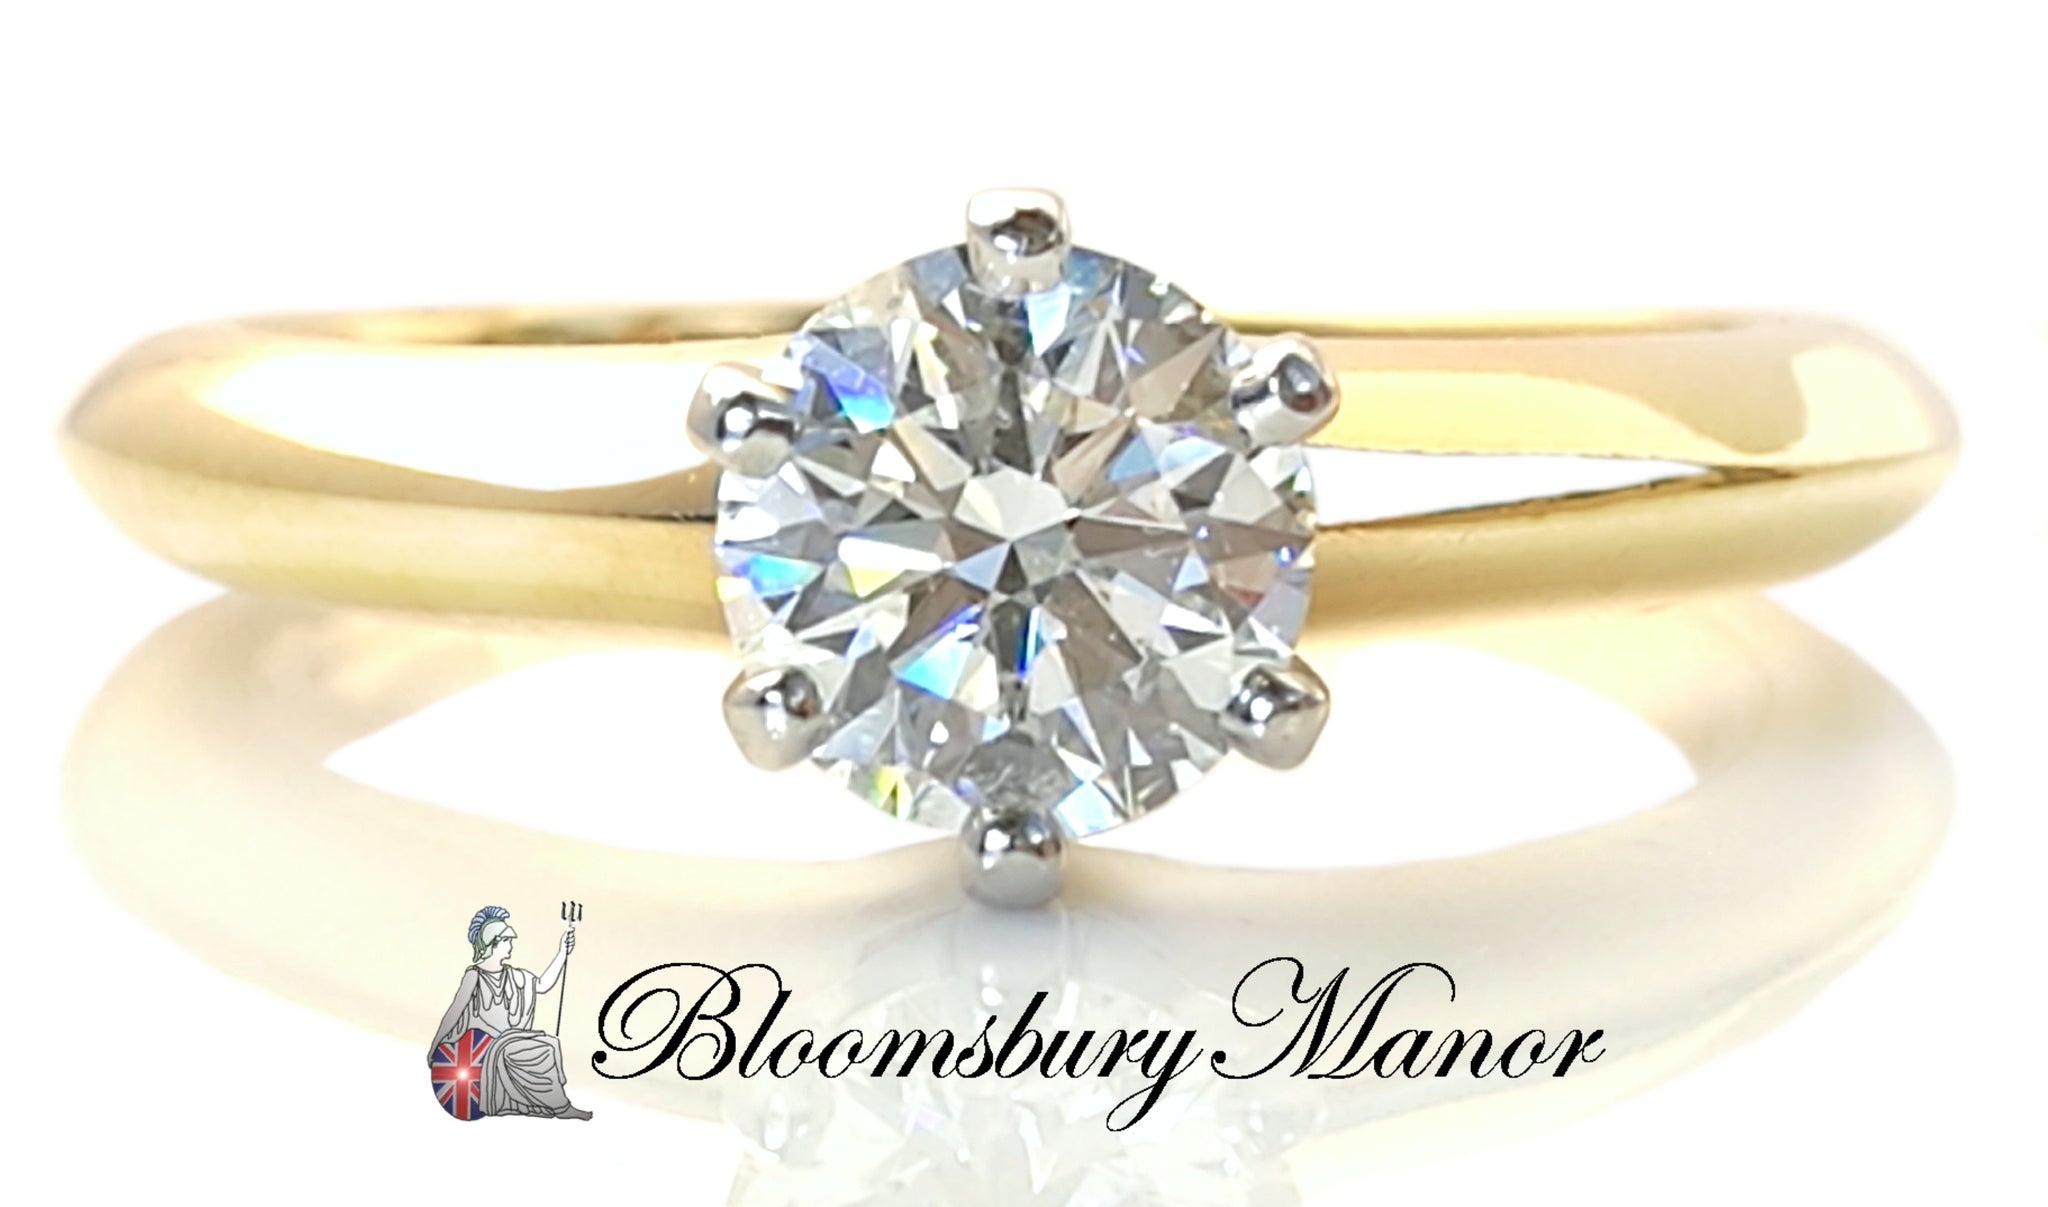 Tiffany Cartier Engagement Rings Bloomsbury Manor Ltd